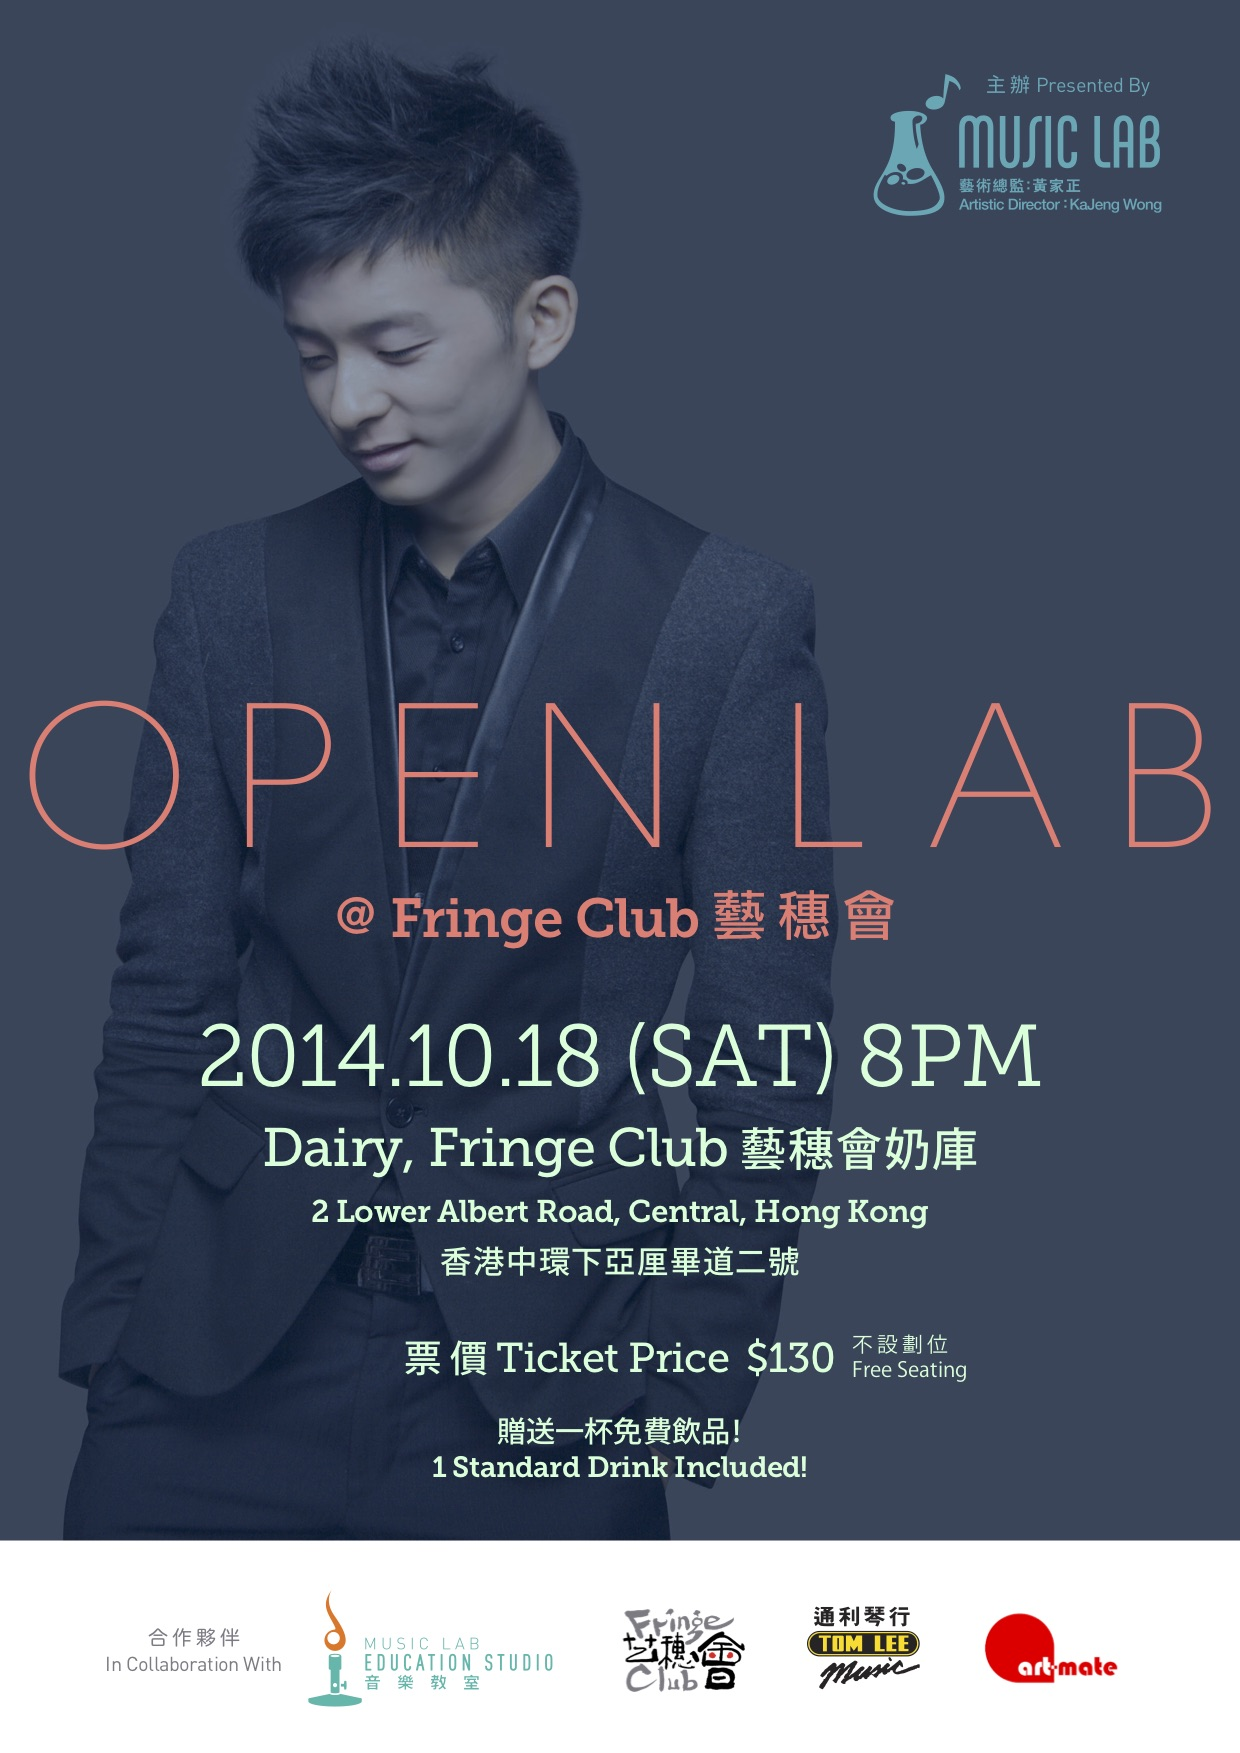 Open Lab @ Fringe Club - Open Lab now in Fringe Club!From Baroque to Jazz,pianist KaJeng Wong will perform and share about music with you, with a drink in your hands!